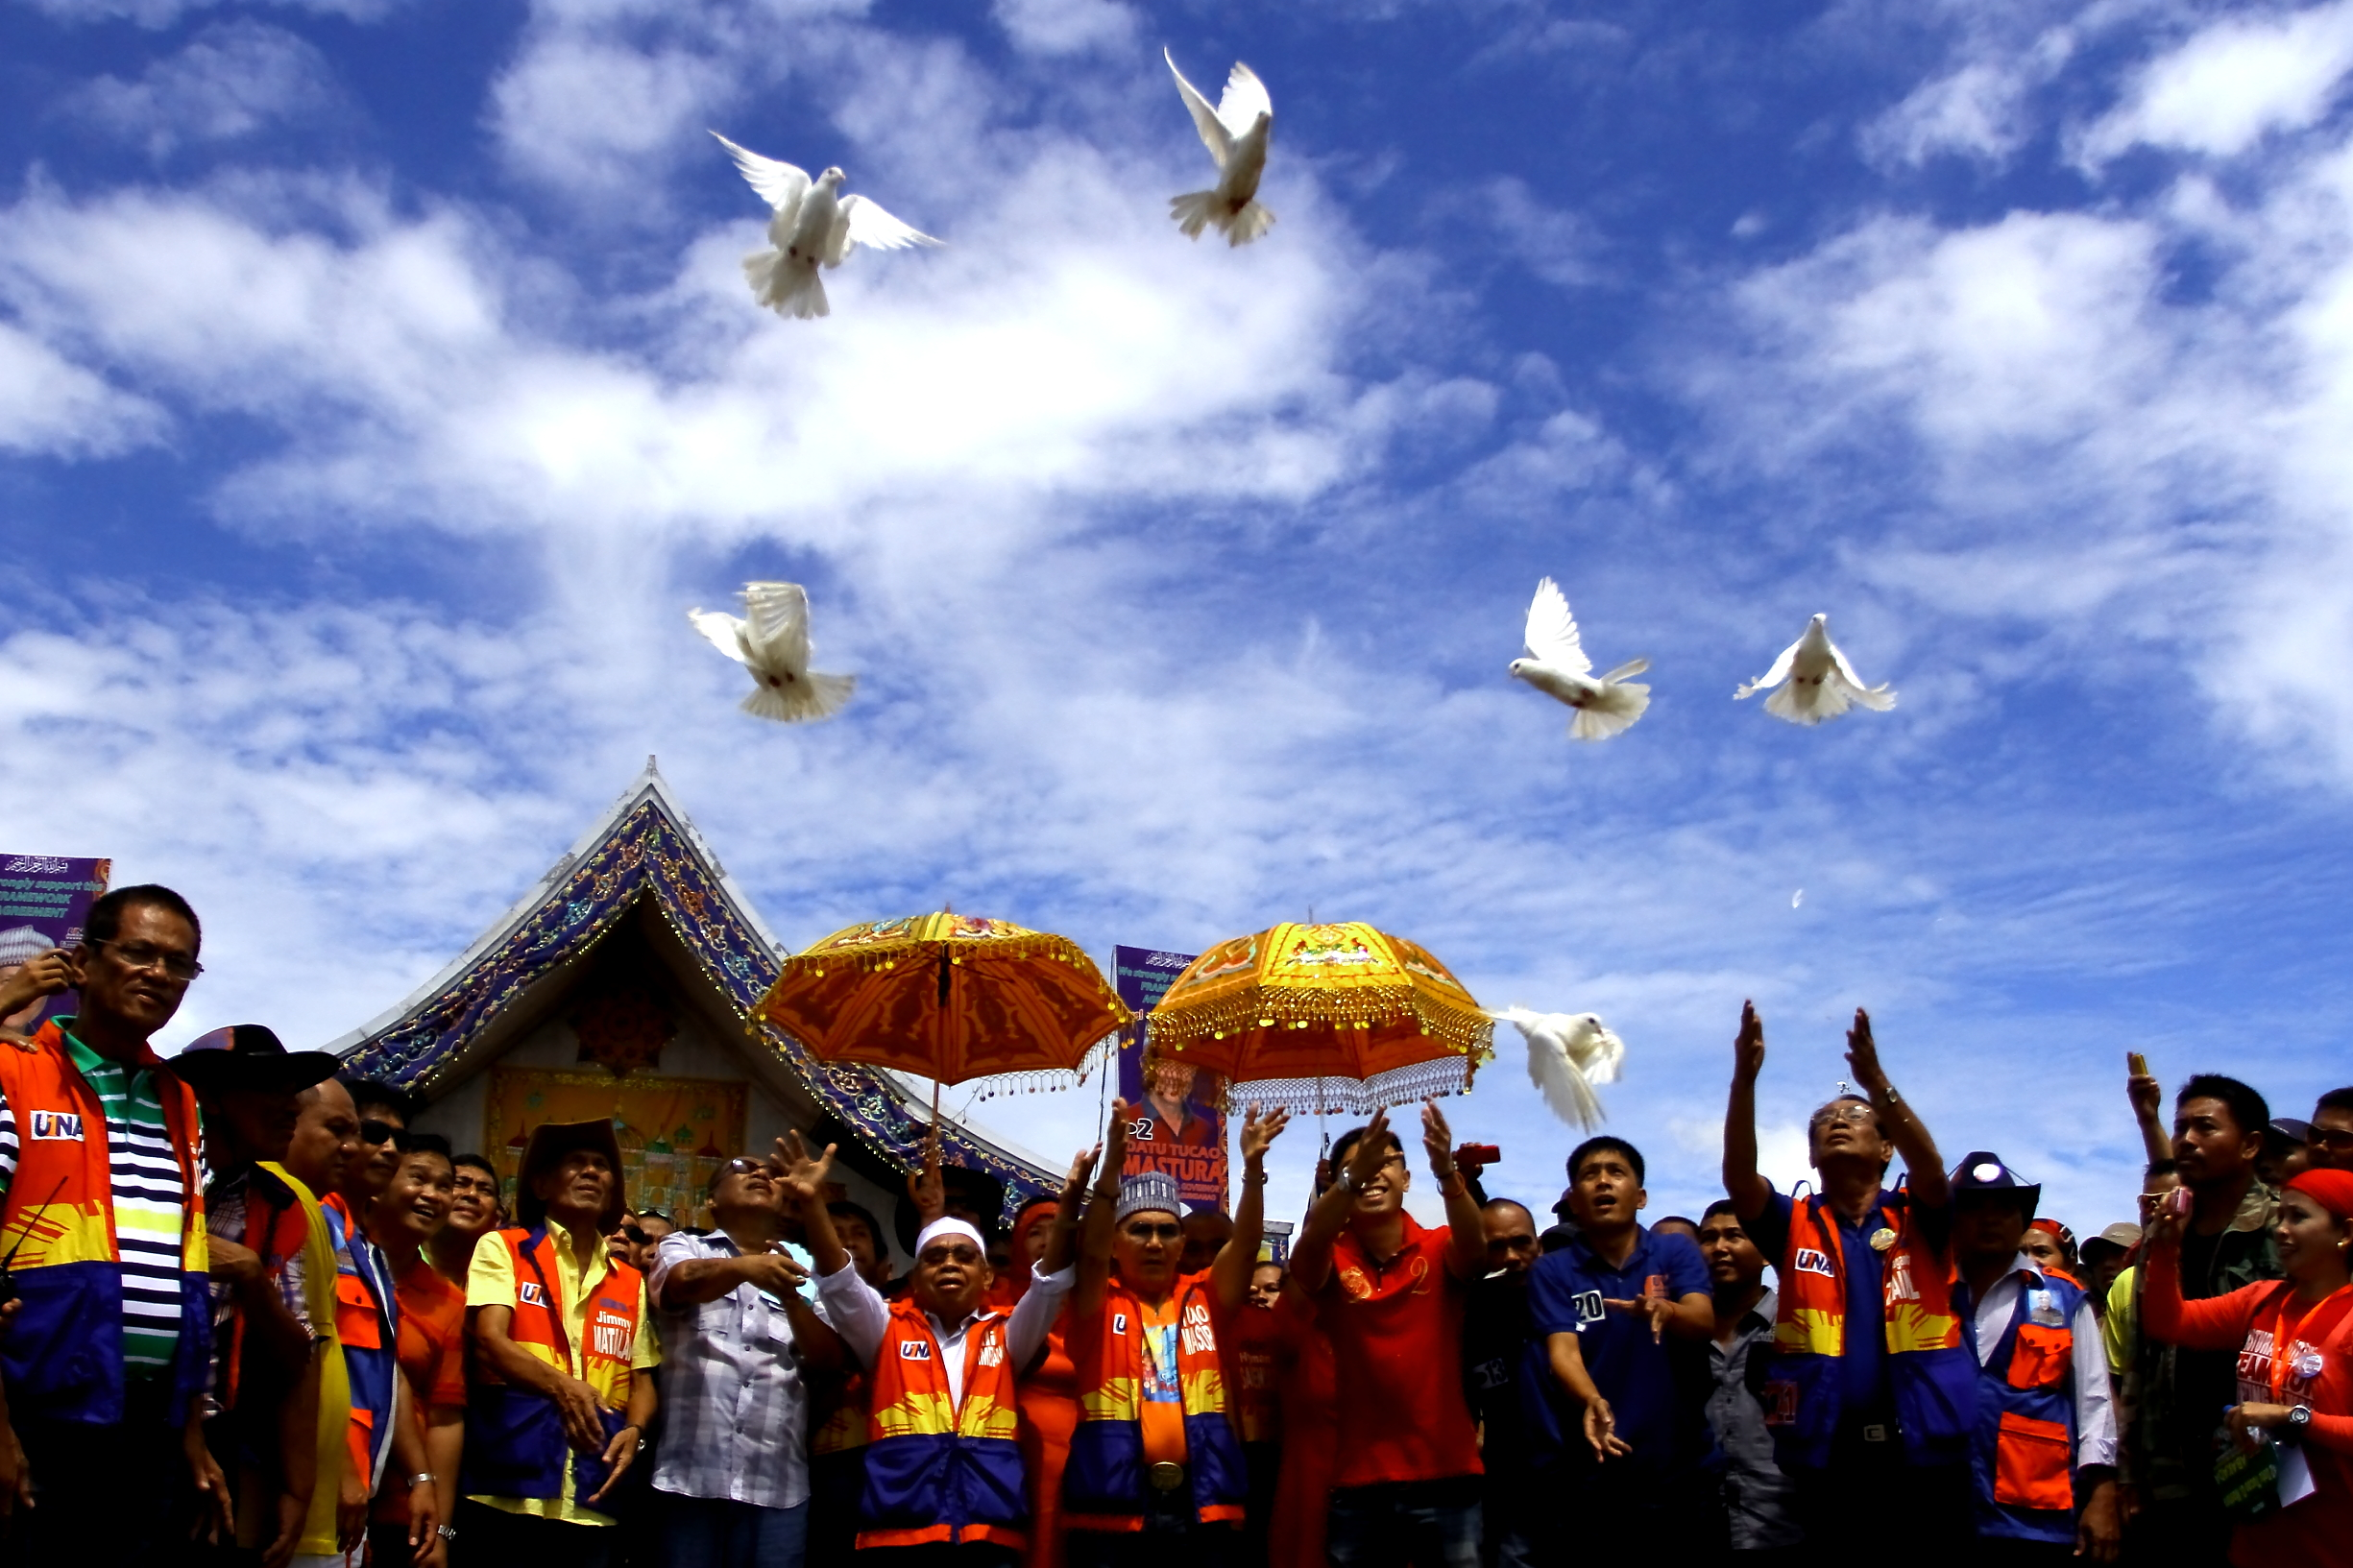 Muslim candidates backed by the Moro Islamic Liberation Front (MILF) release white doves to symbolize peace as the rebels took their first tentative steps to joining a political exercise